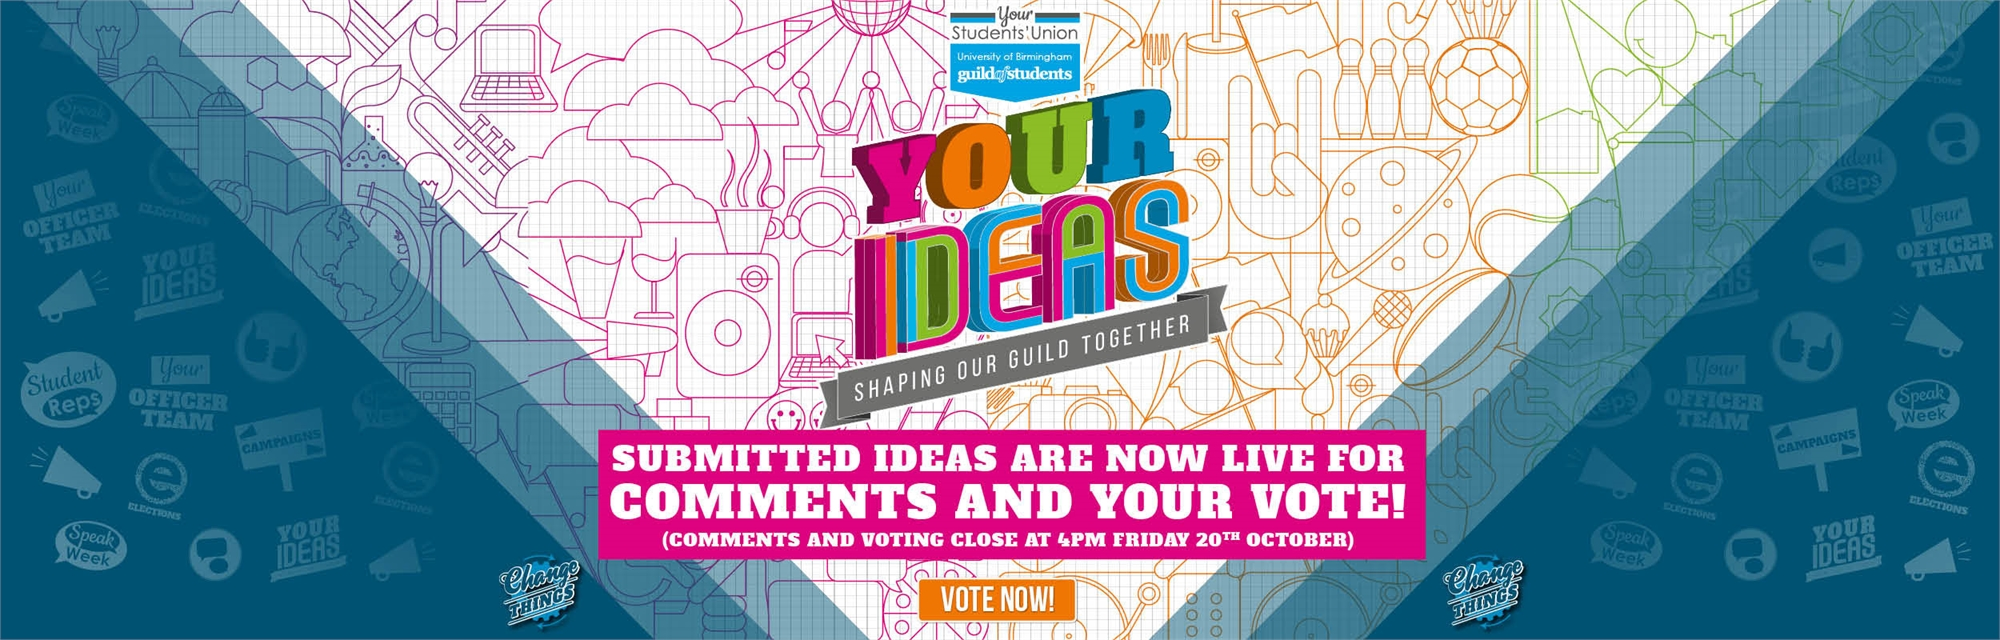 Your Ideas - Submitted Ideas are now live for comments and your vote - Voting closes 20/10/17 at 4pm